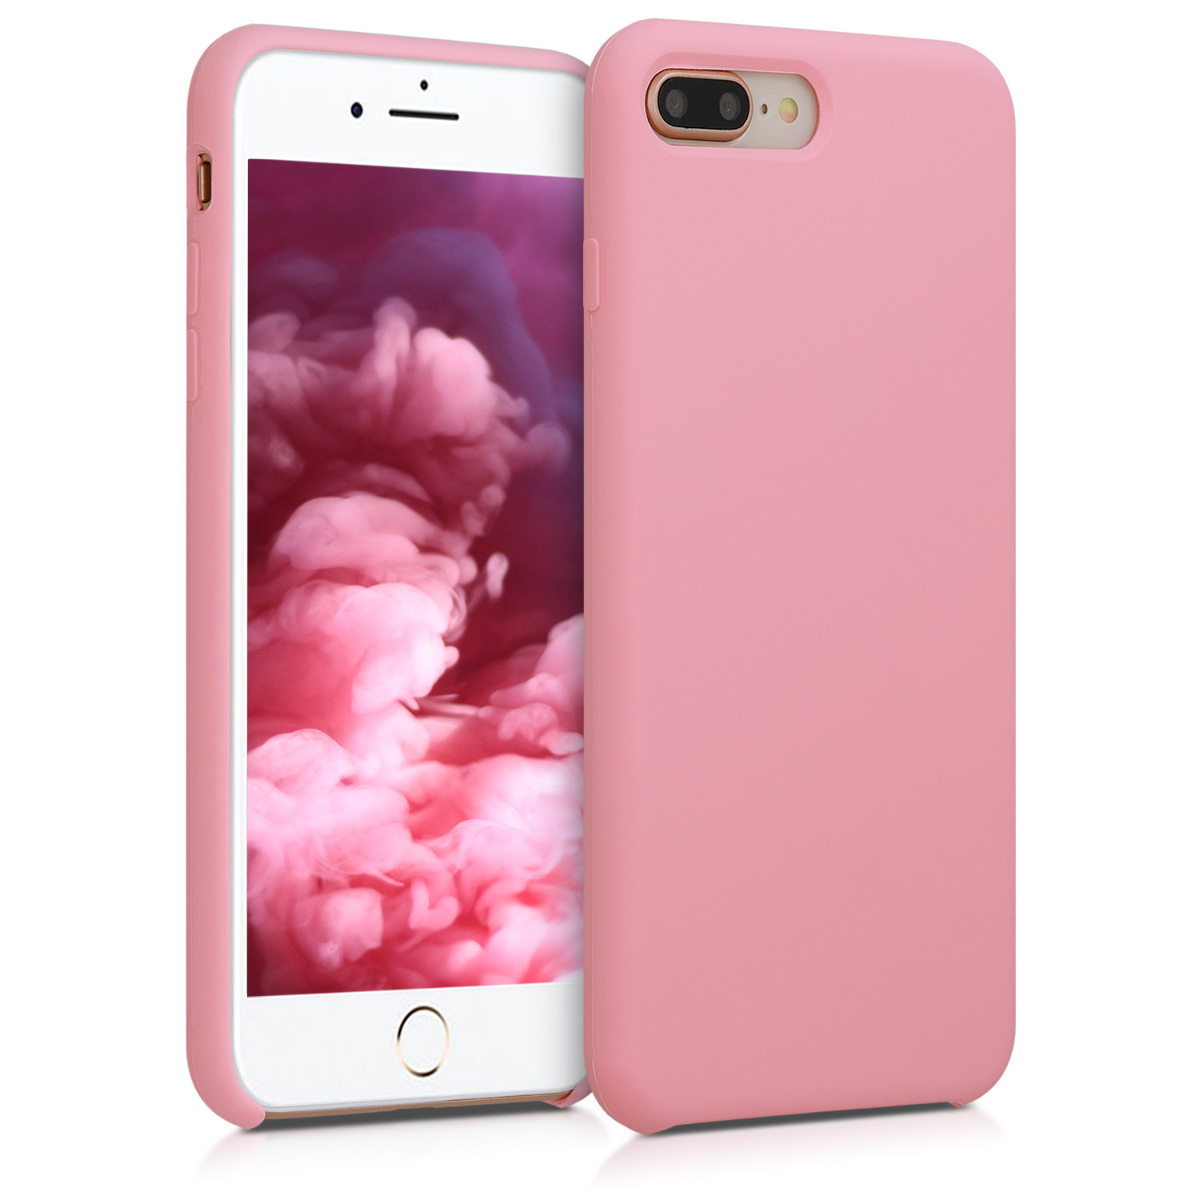 KW Θήκη Σιλικόνης iPhone 7 Plus / 8 Plus - Soft Flexible Rubber Protective Cover - Light Pink - (40842.110)